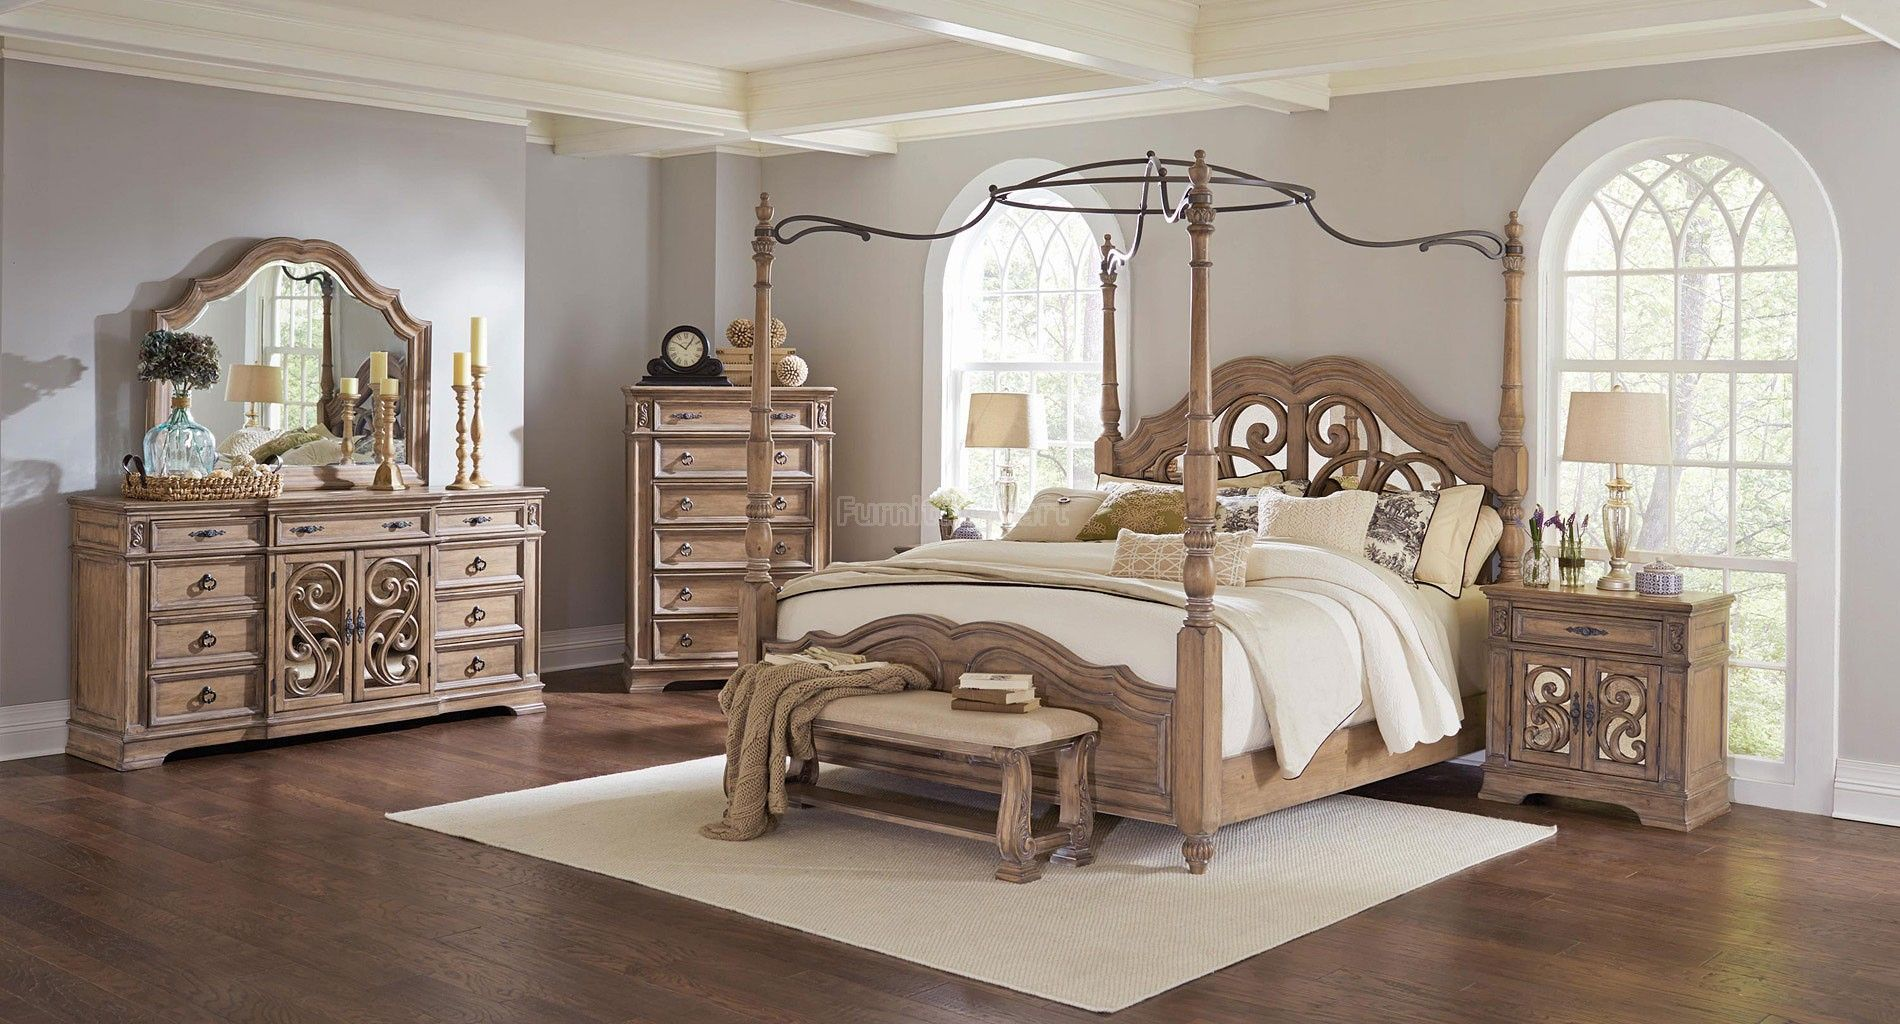 King Size Bedroom Sets Canopy ilana canopy bedroom set coaster furniture | furniture cart